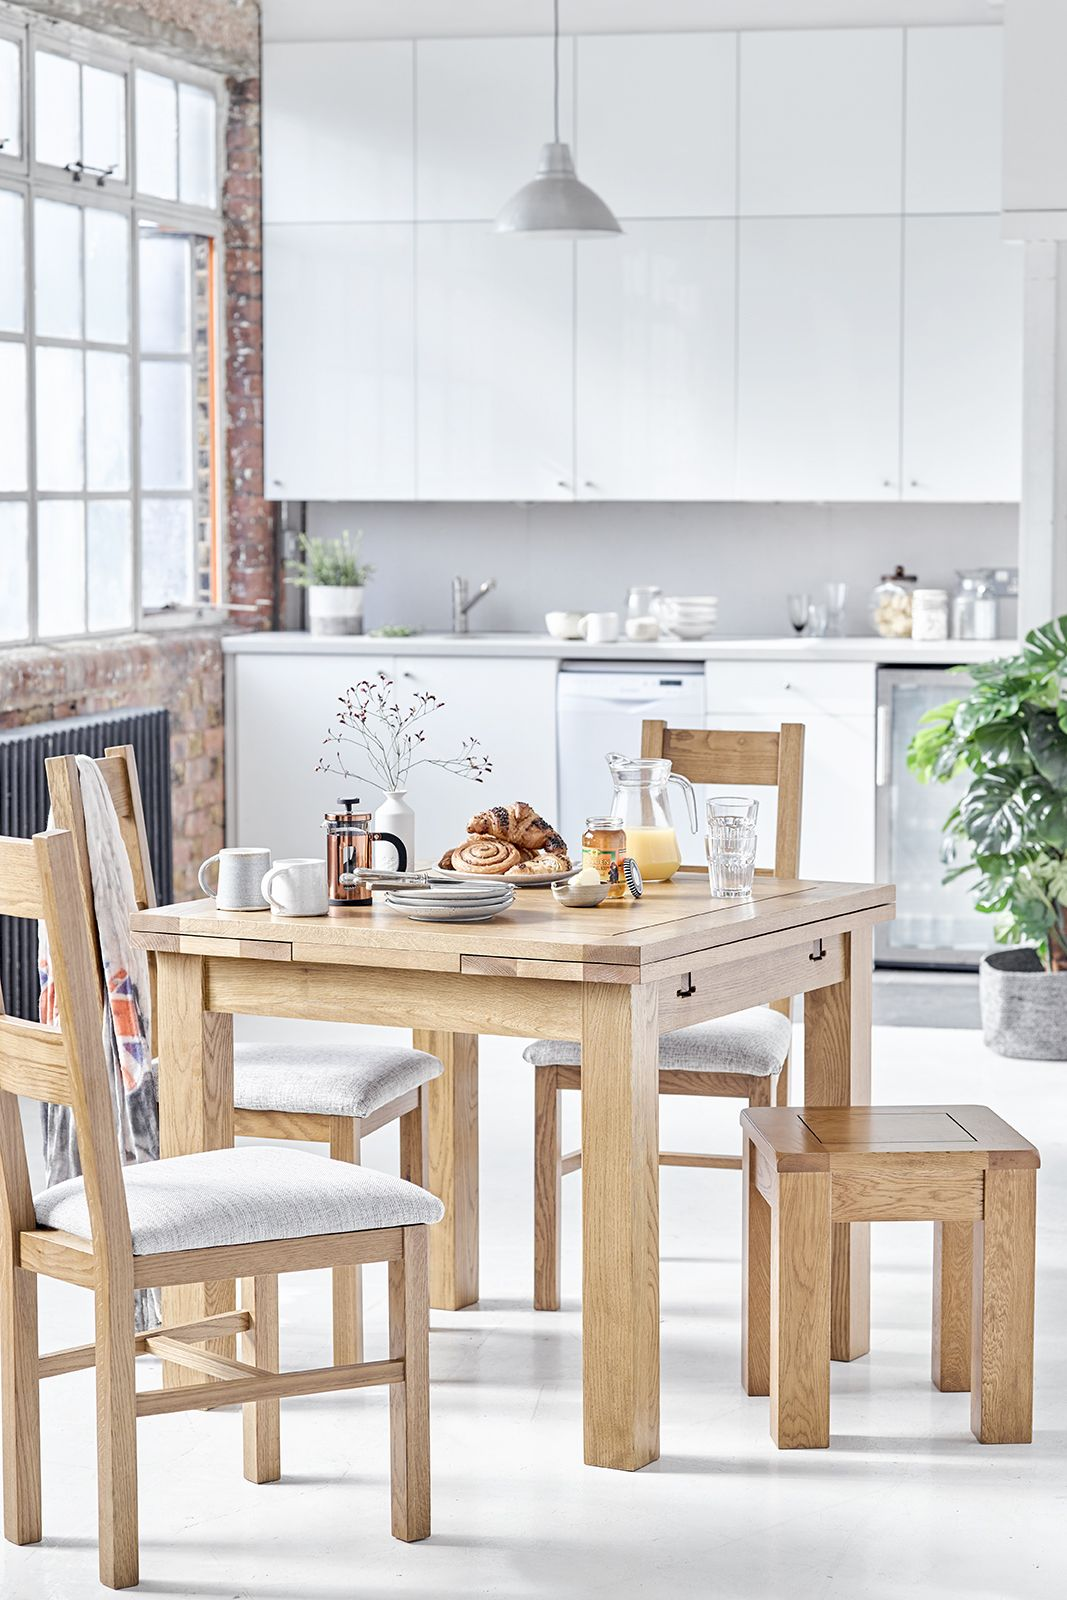 Dining table and chairs also best your home mother   day images in rh pinterest